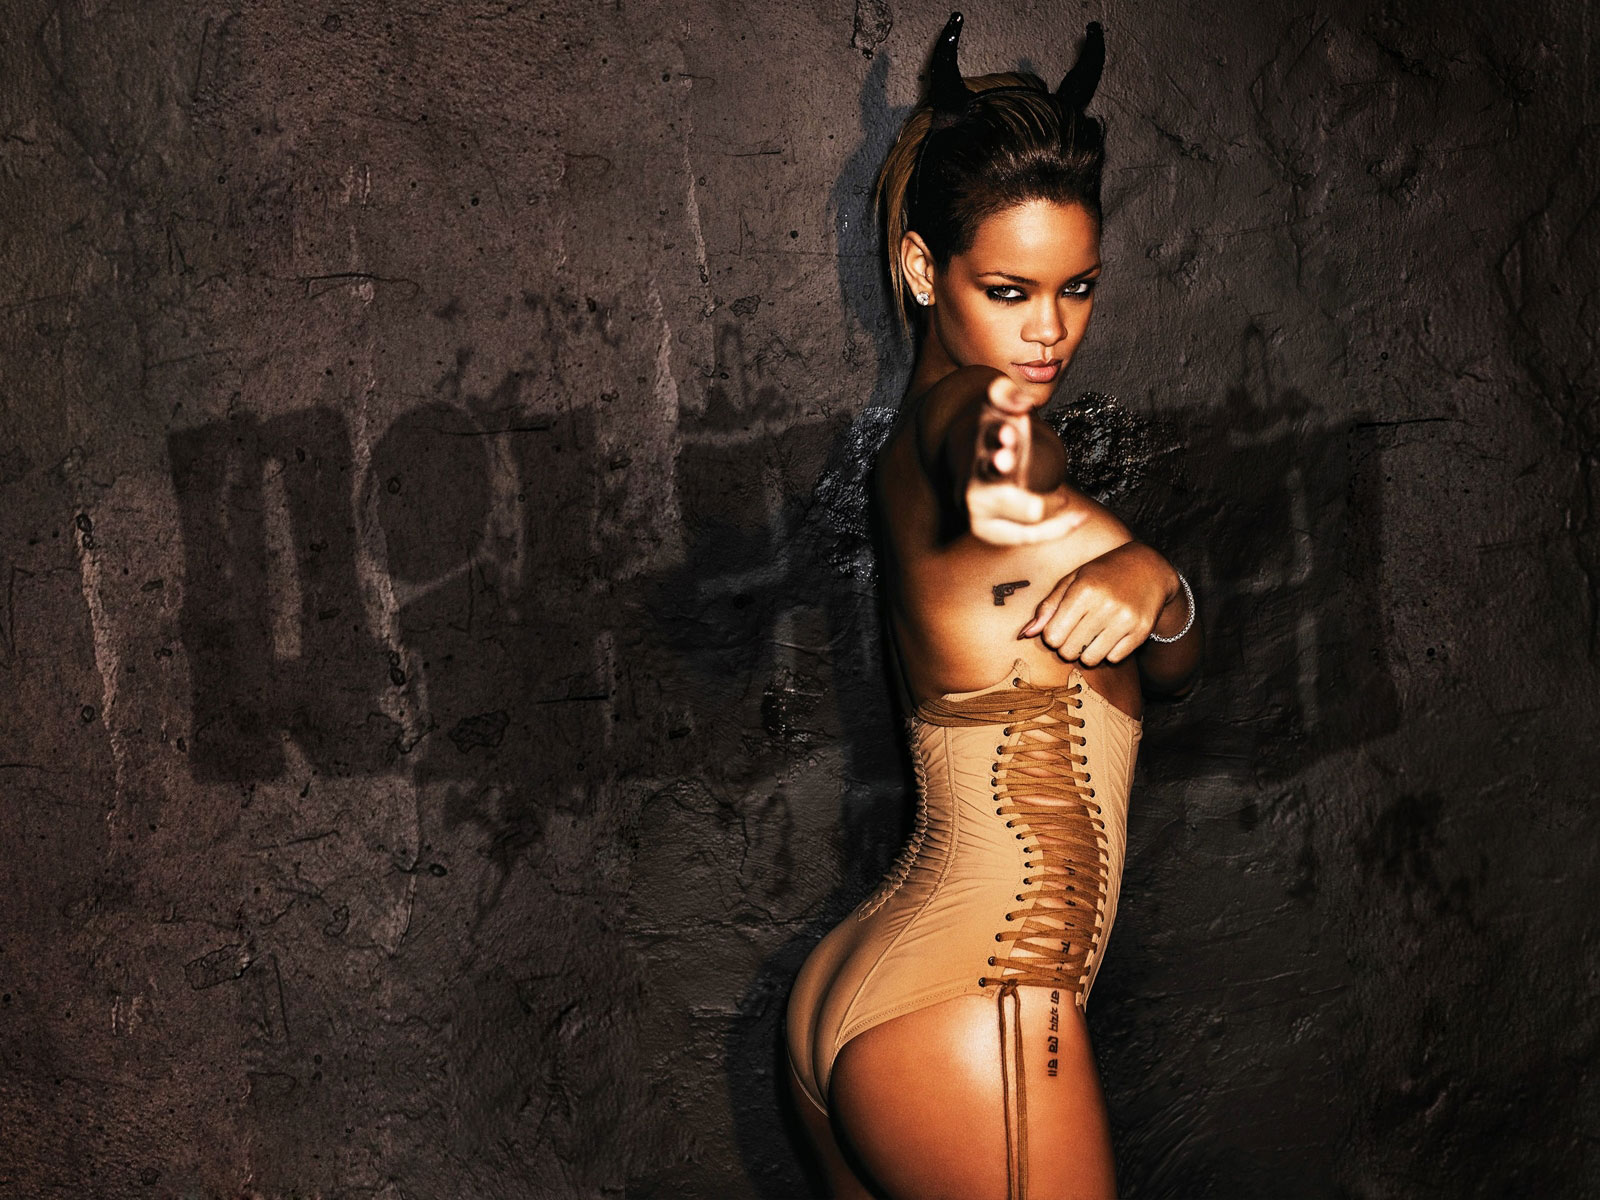 http://1.bp.blogspot.com/-1mKKs15KfCA/TncwC40PMhI/AAAAAAAACOo/MFHzriF450g/s1600/rihanna+with+horns+and+a+pistol+tattoo.jpg